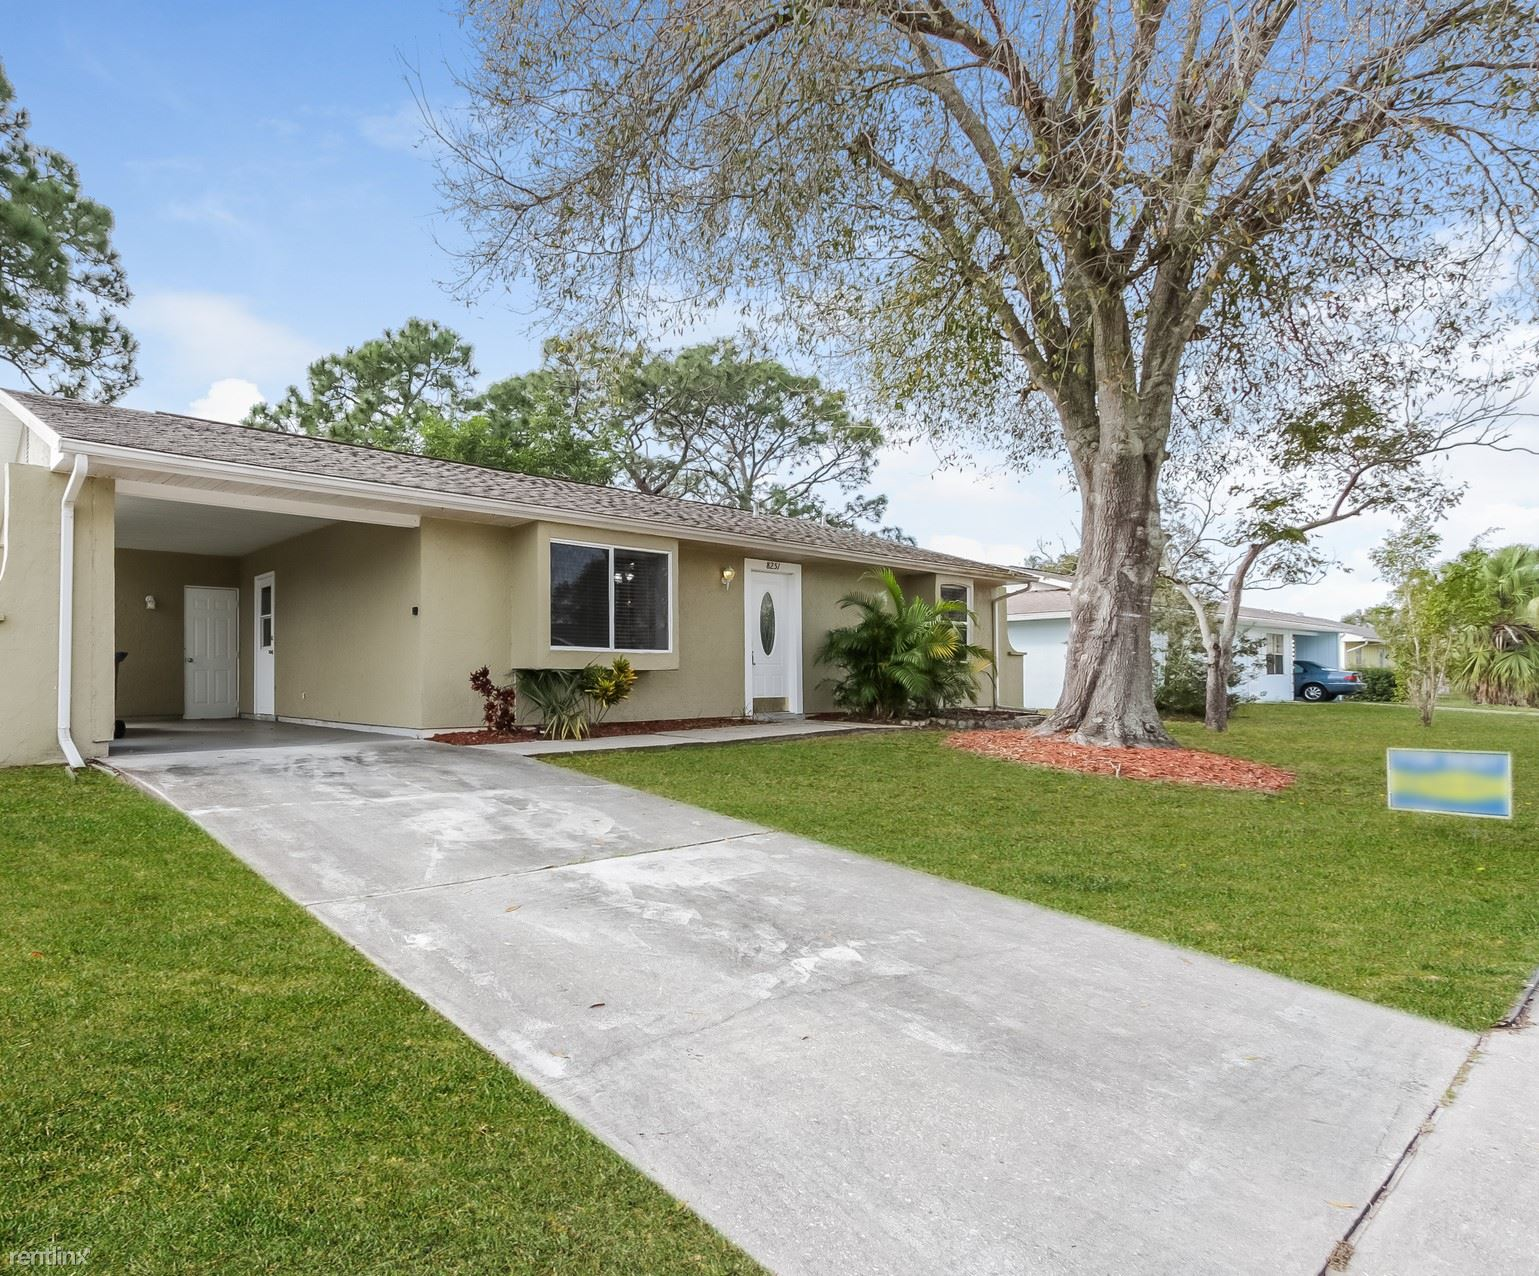 8251 Lombra Ave, North Port, FL - $1,199